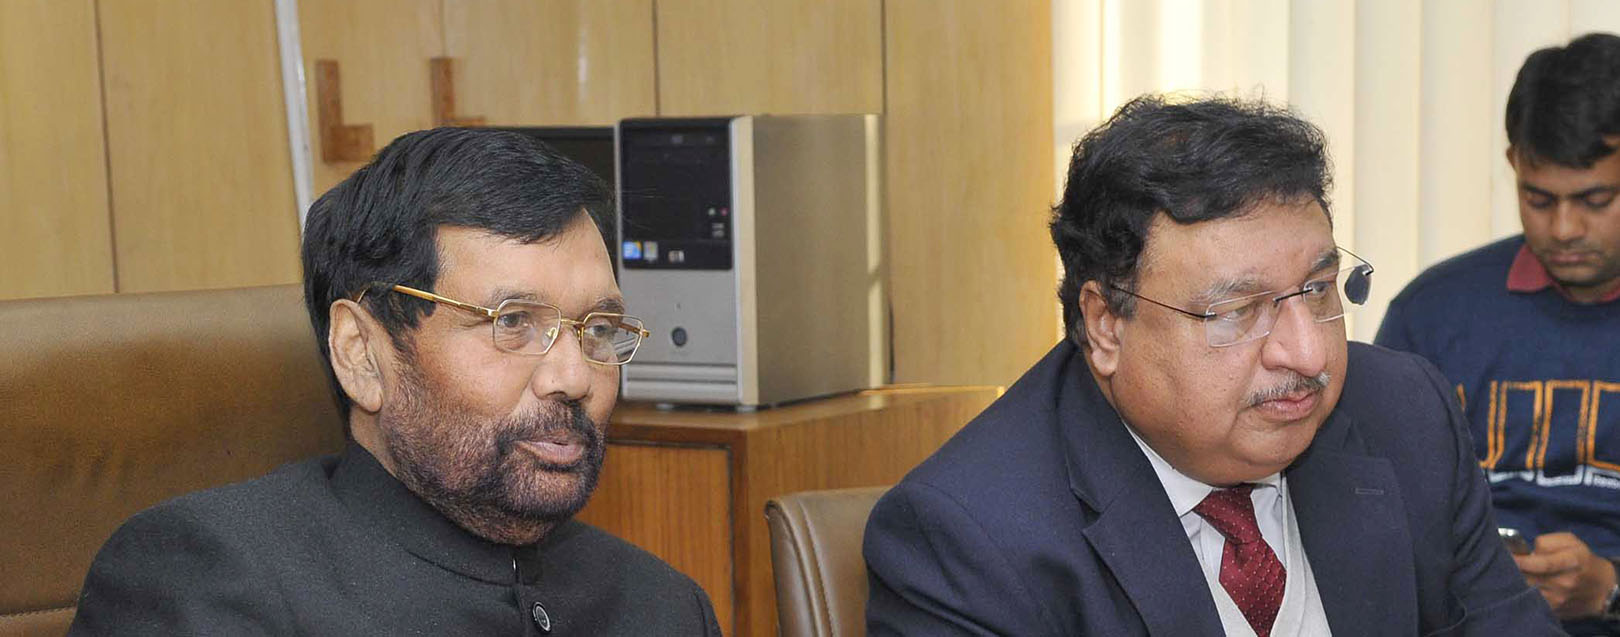 Govt may consider imposing duty on wheat imports: Paswan